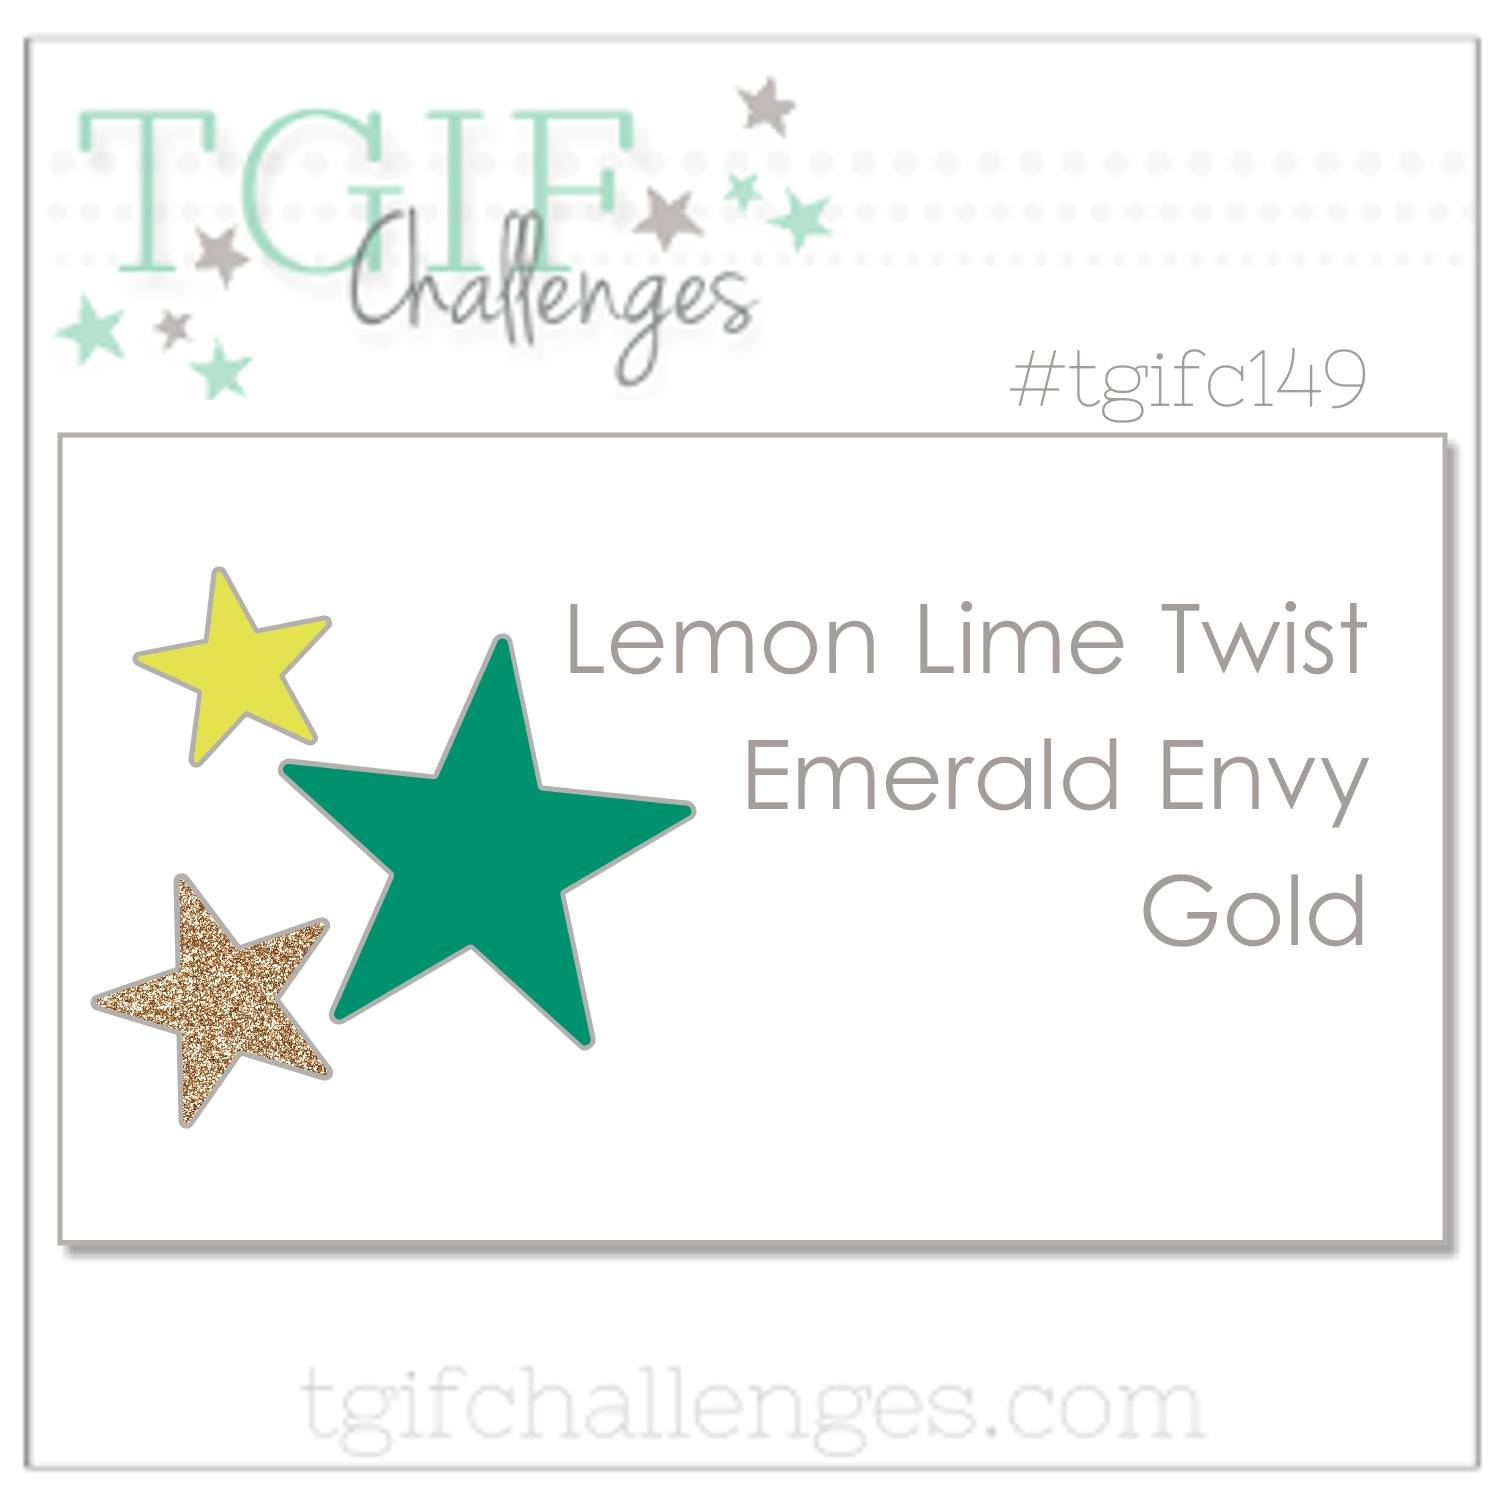 TGIFC149 Color Challenge Lemon Lime Twist, Emerald Envy, Gold